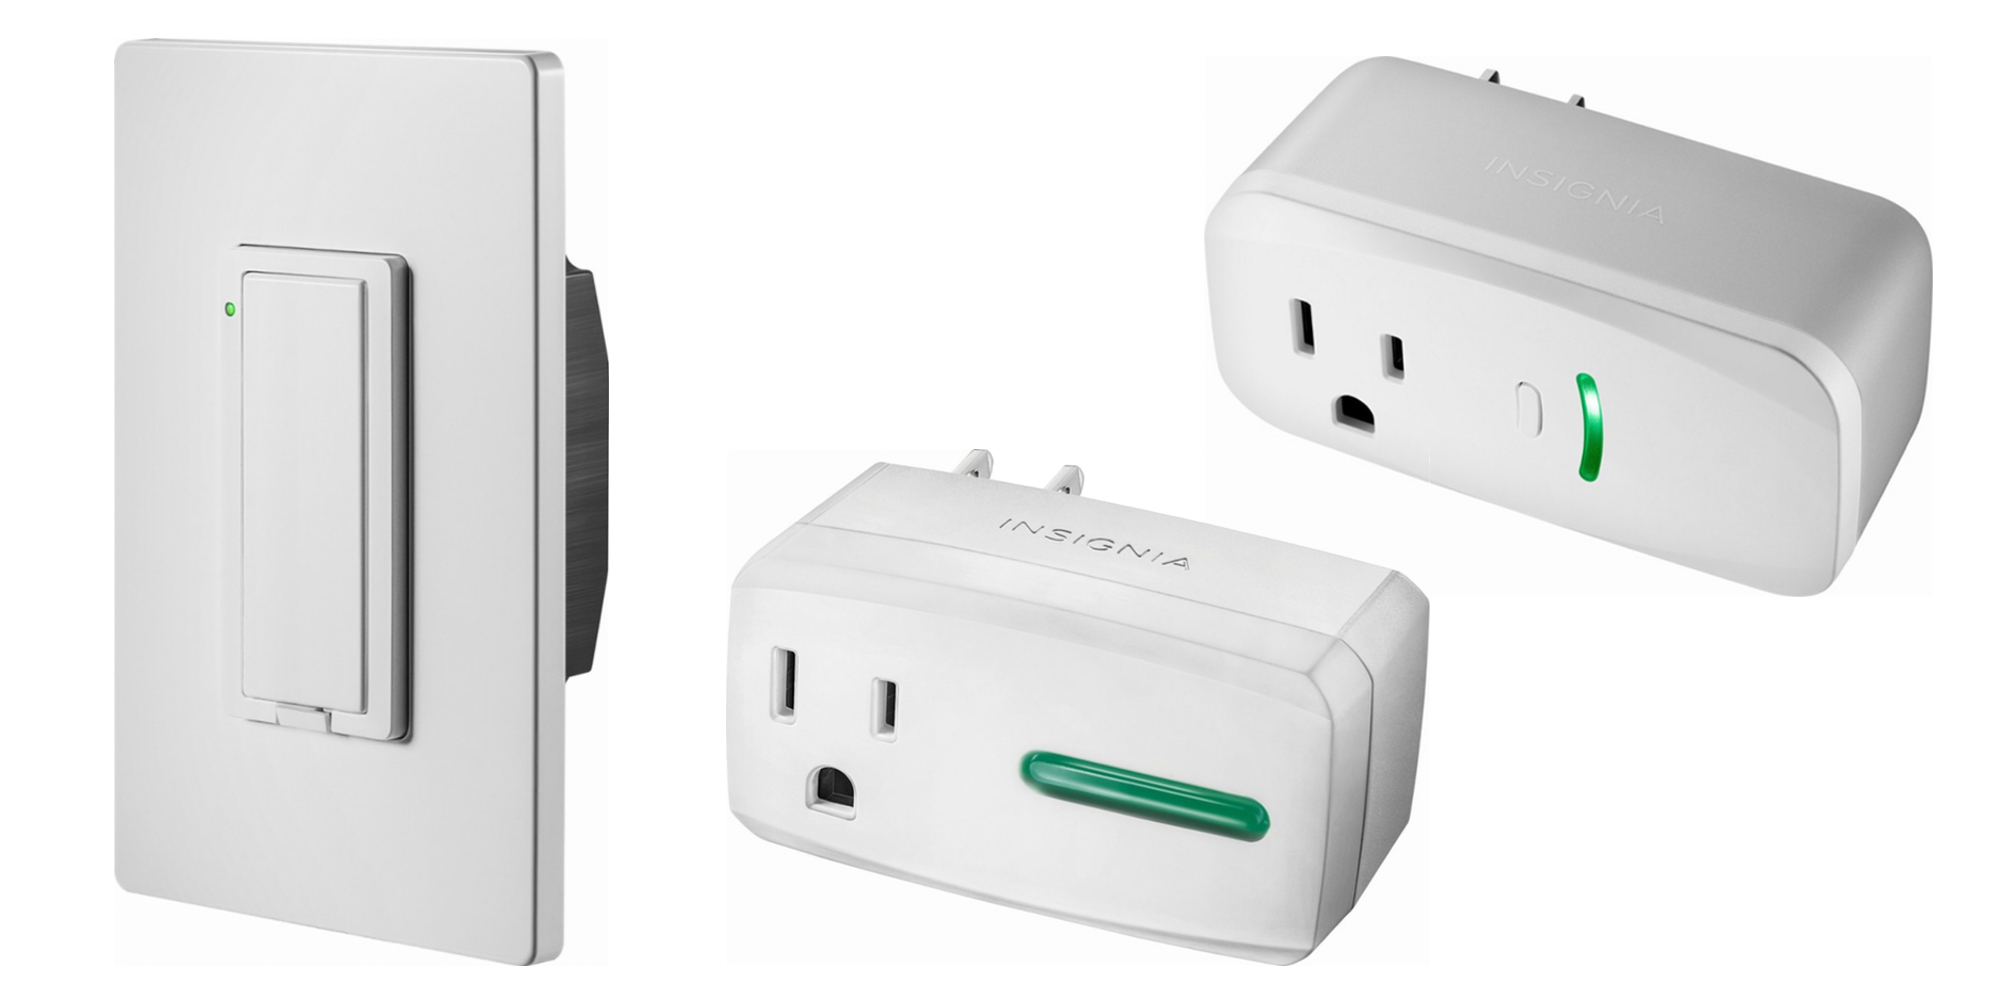 Save on the Insignia HomeKit-enabled light switch & smart plugs from $17 shipped